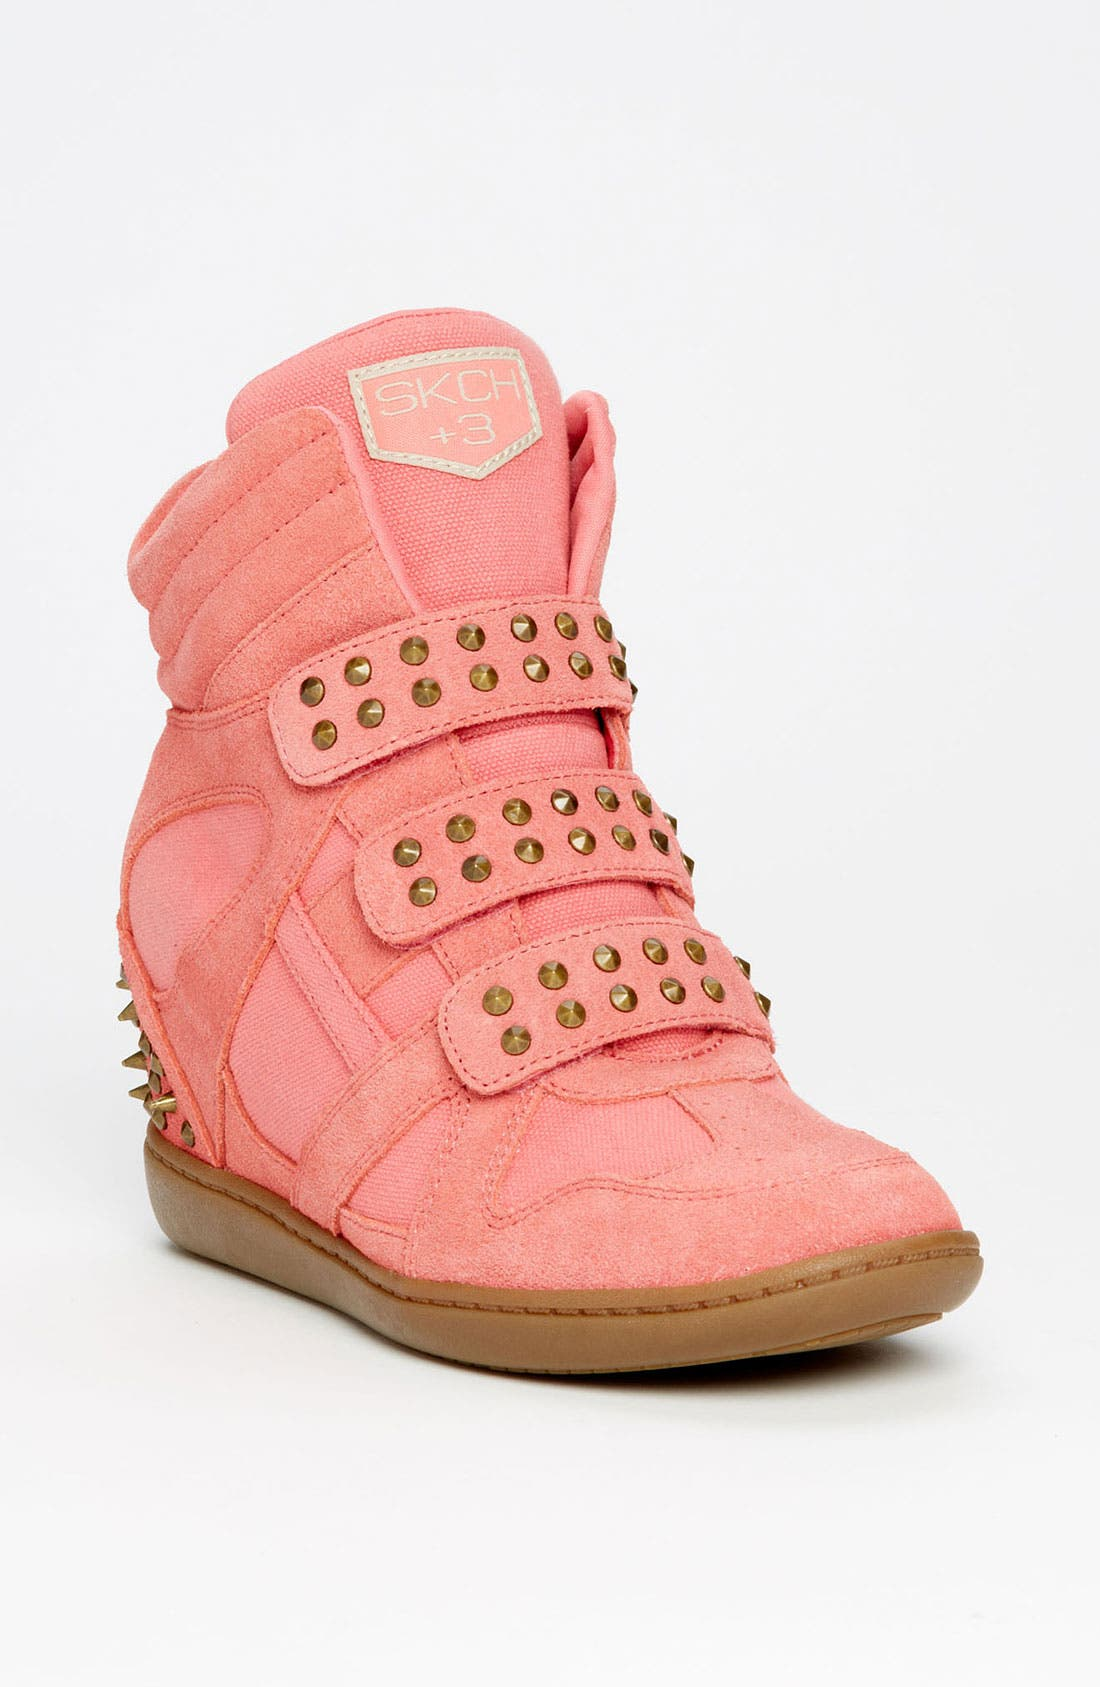 Alternate Image 1 Selected - SKECHERS 'Plus 3 - Staked' Wedge Sneaker (Women)